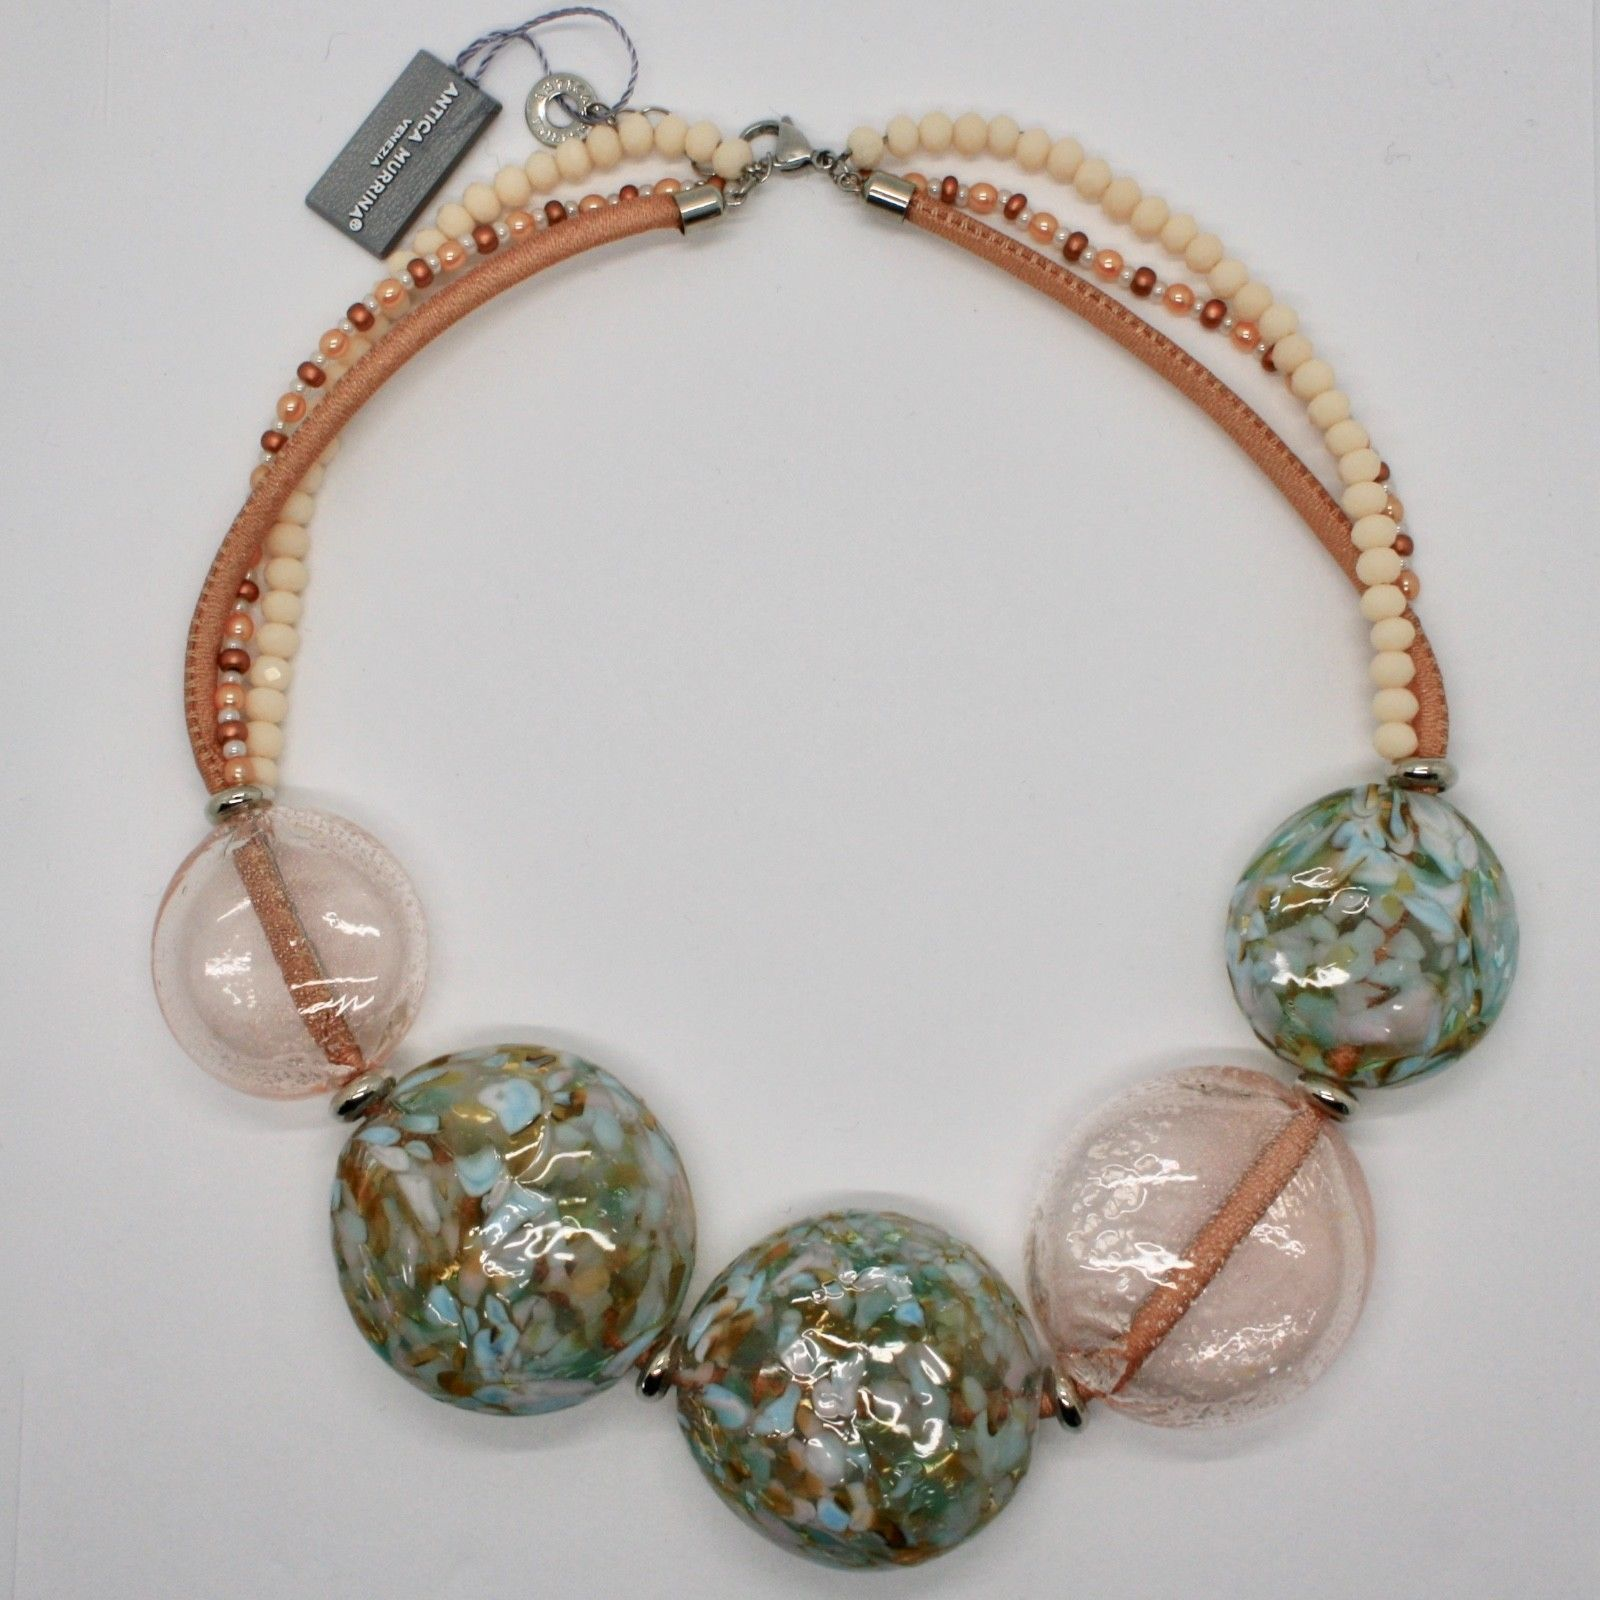 ANTICA MURRINA VENEZIA NECKLACE WITH BIG DISC OF MURANO GLASS BEIGE COA75A03